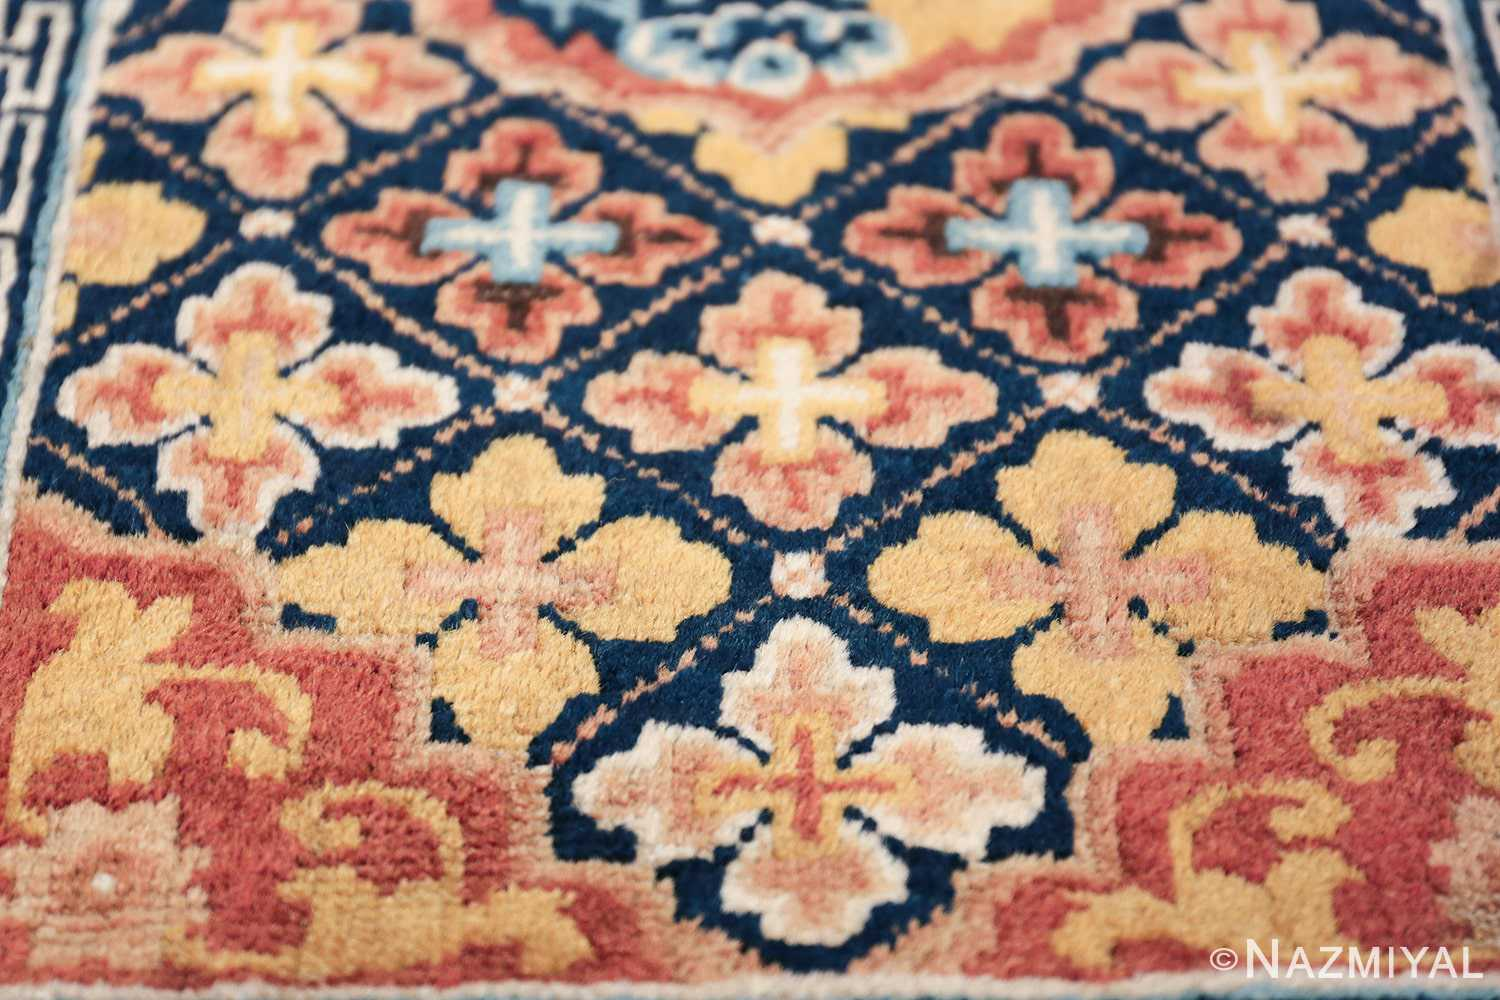 Small Size Antique Chinese Ningxia Rug 49793 array of flowers Nazmiyal